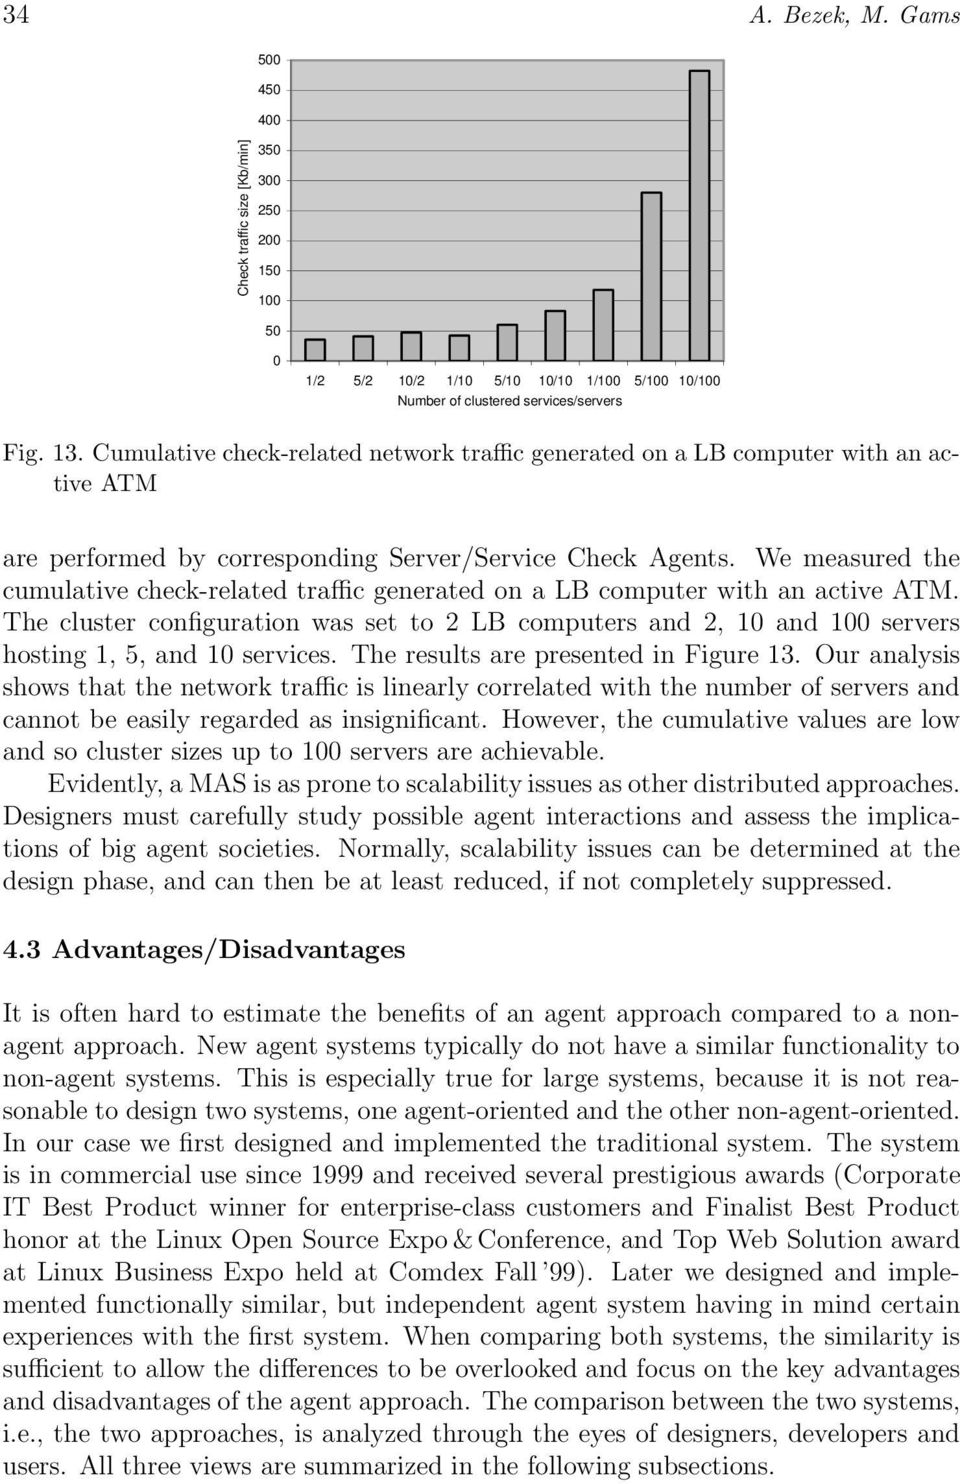 We measured the cumulative check-related traffic generated on a LB computer with an active ATM.